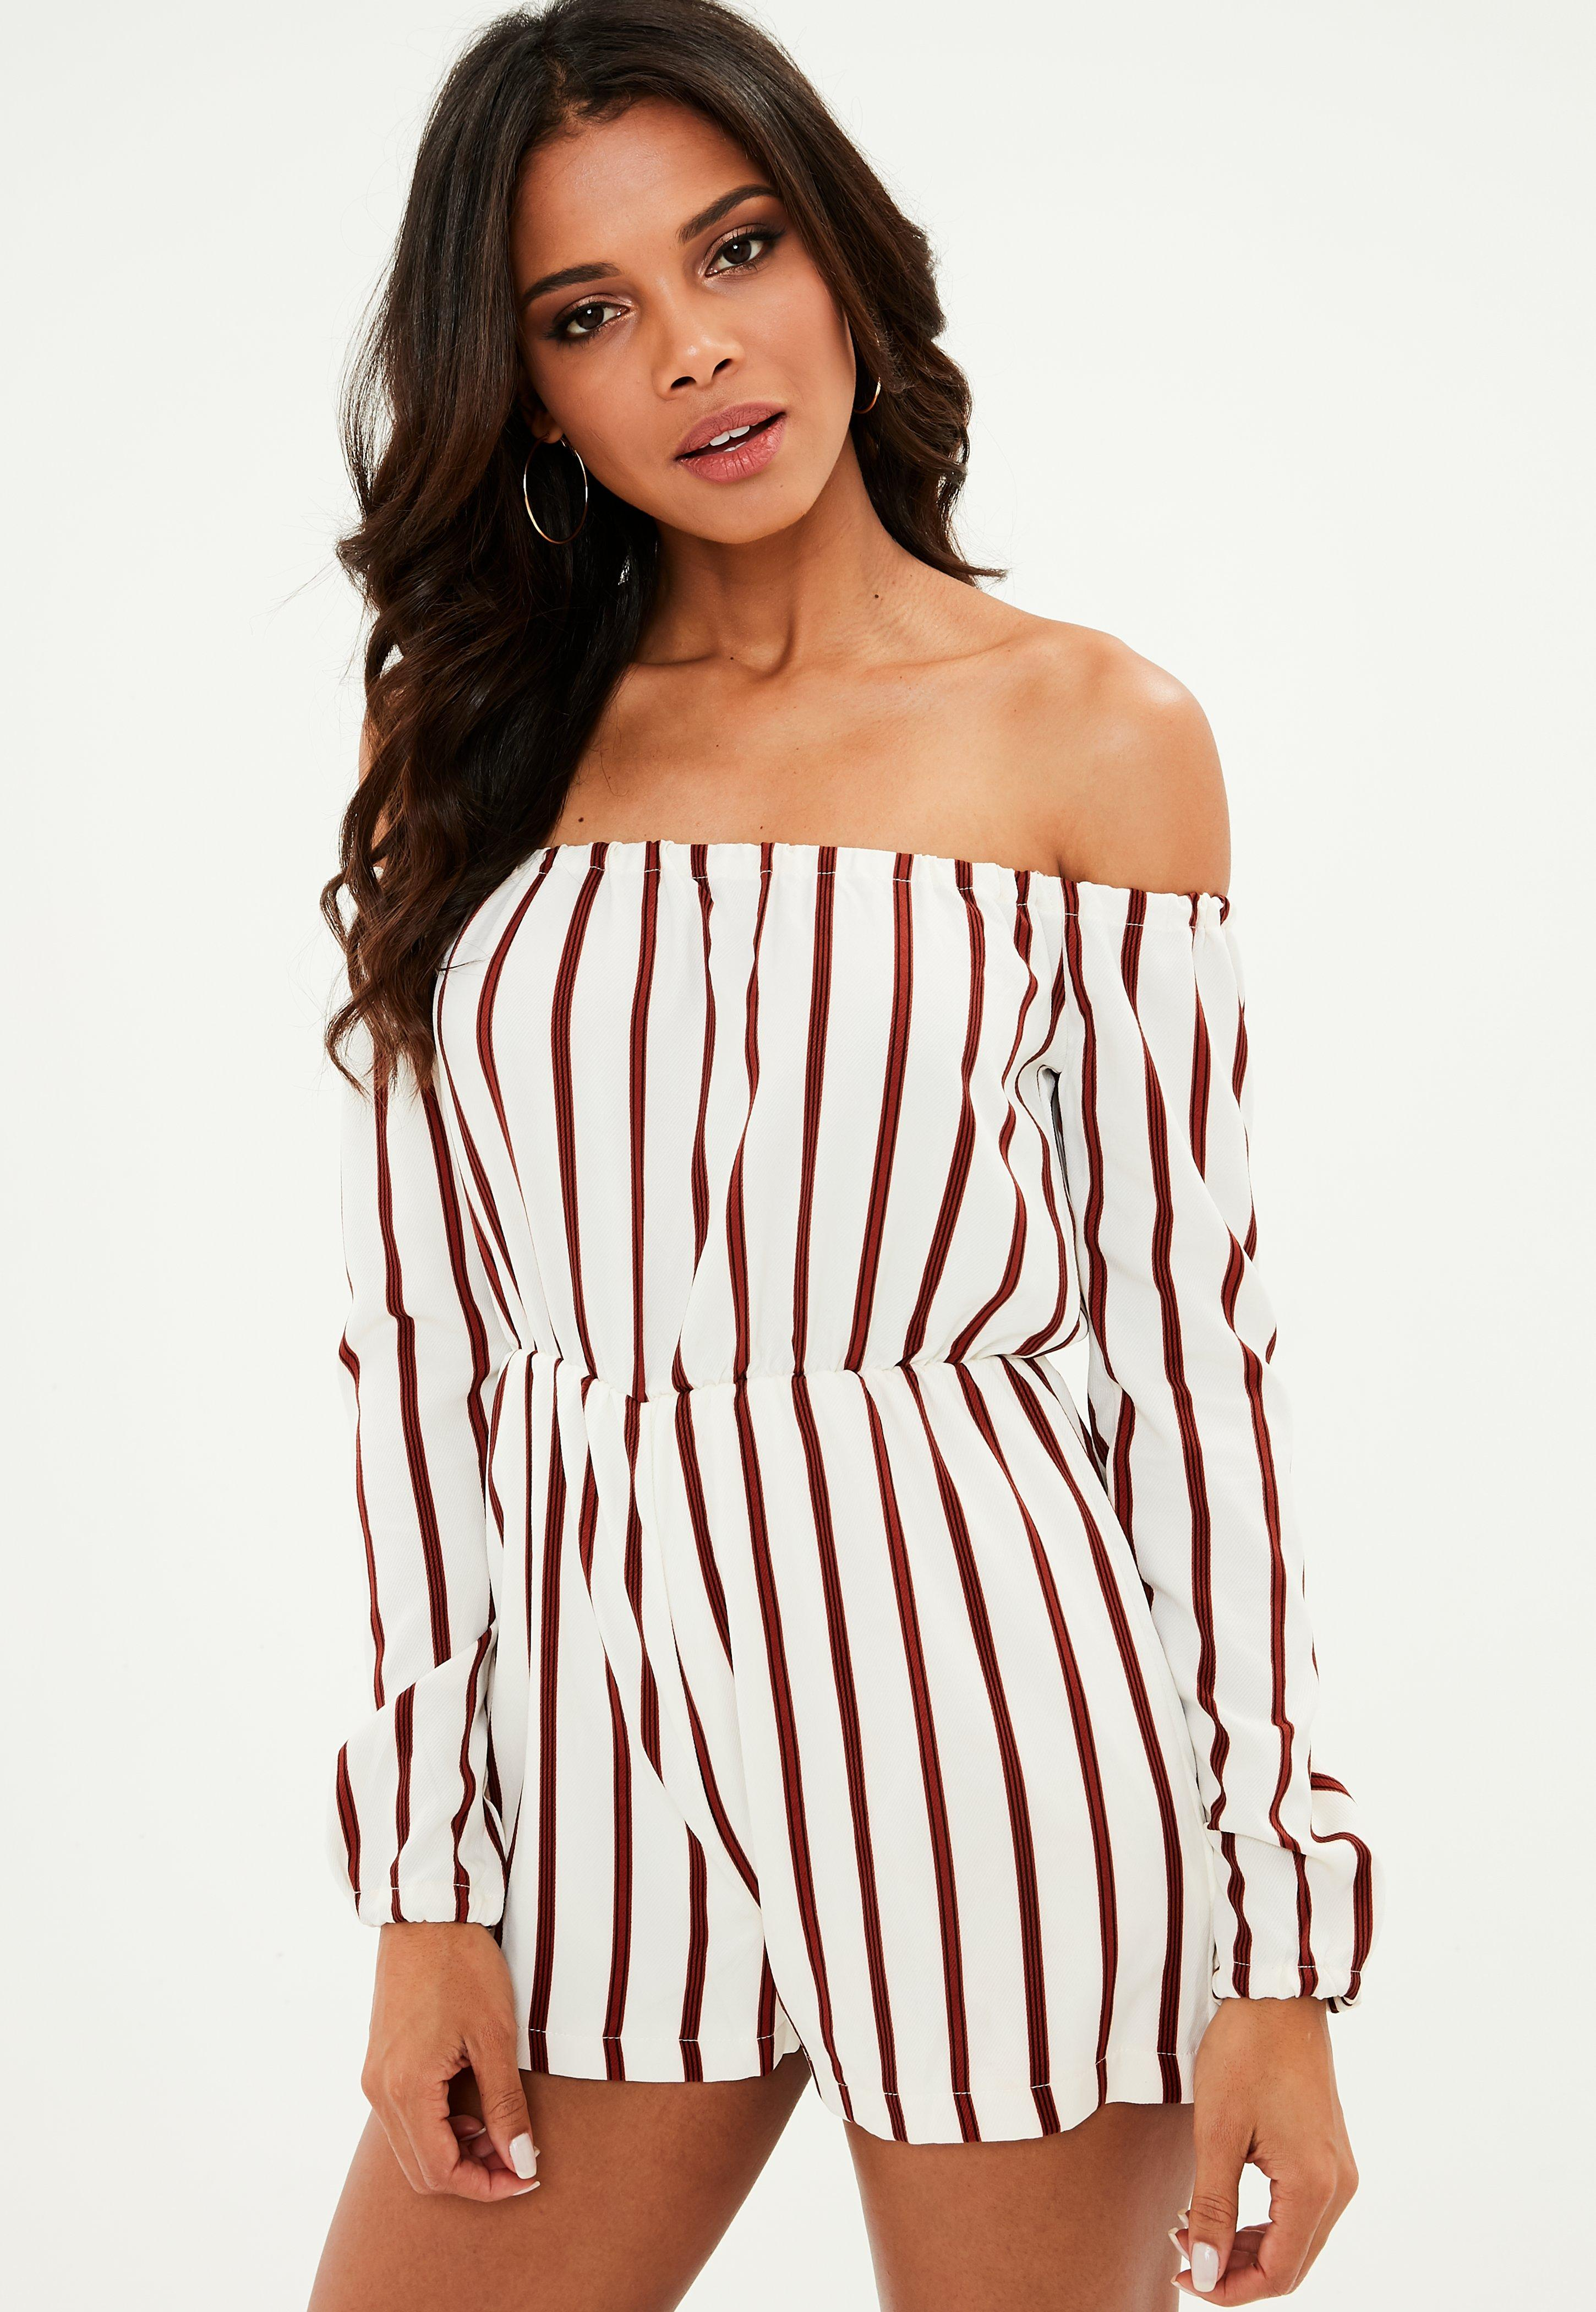 79c25ad5bb3 Missguided White Stripe Bardot Playsuit at £10